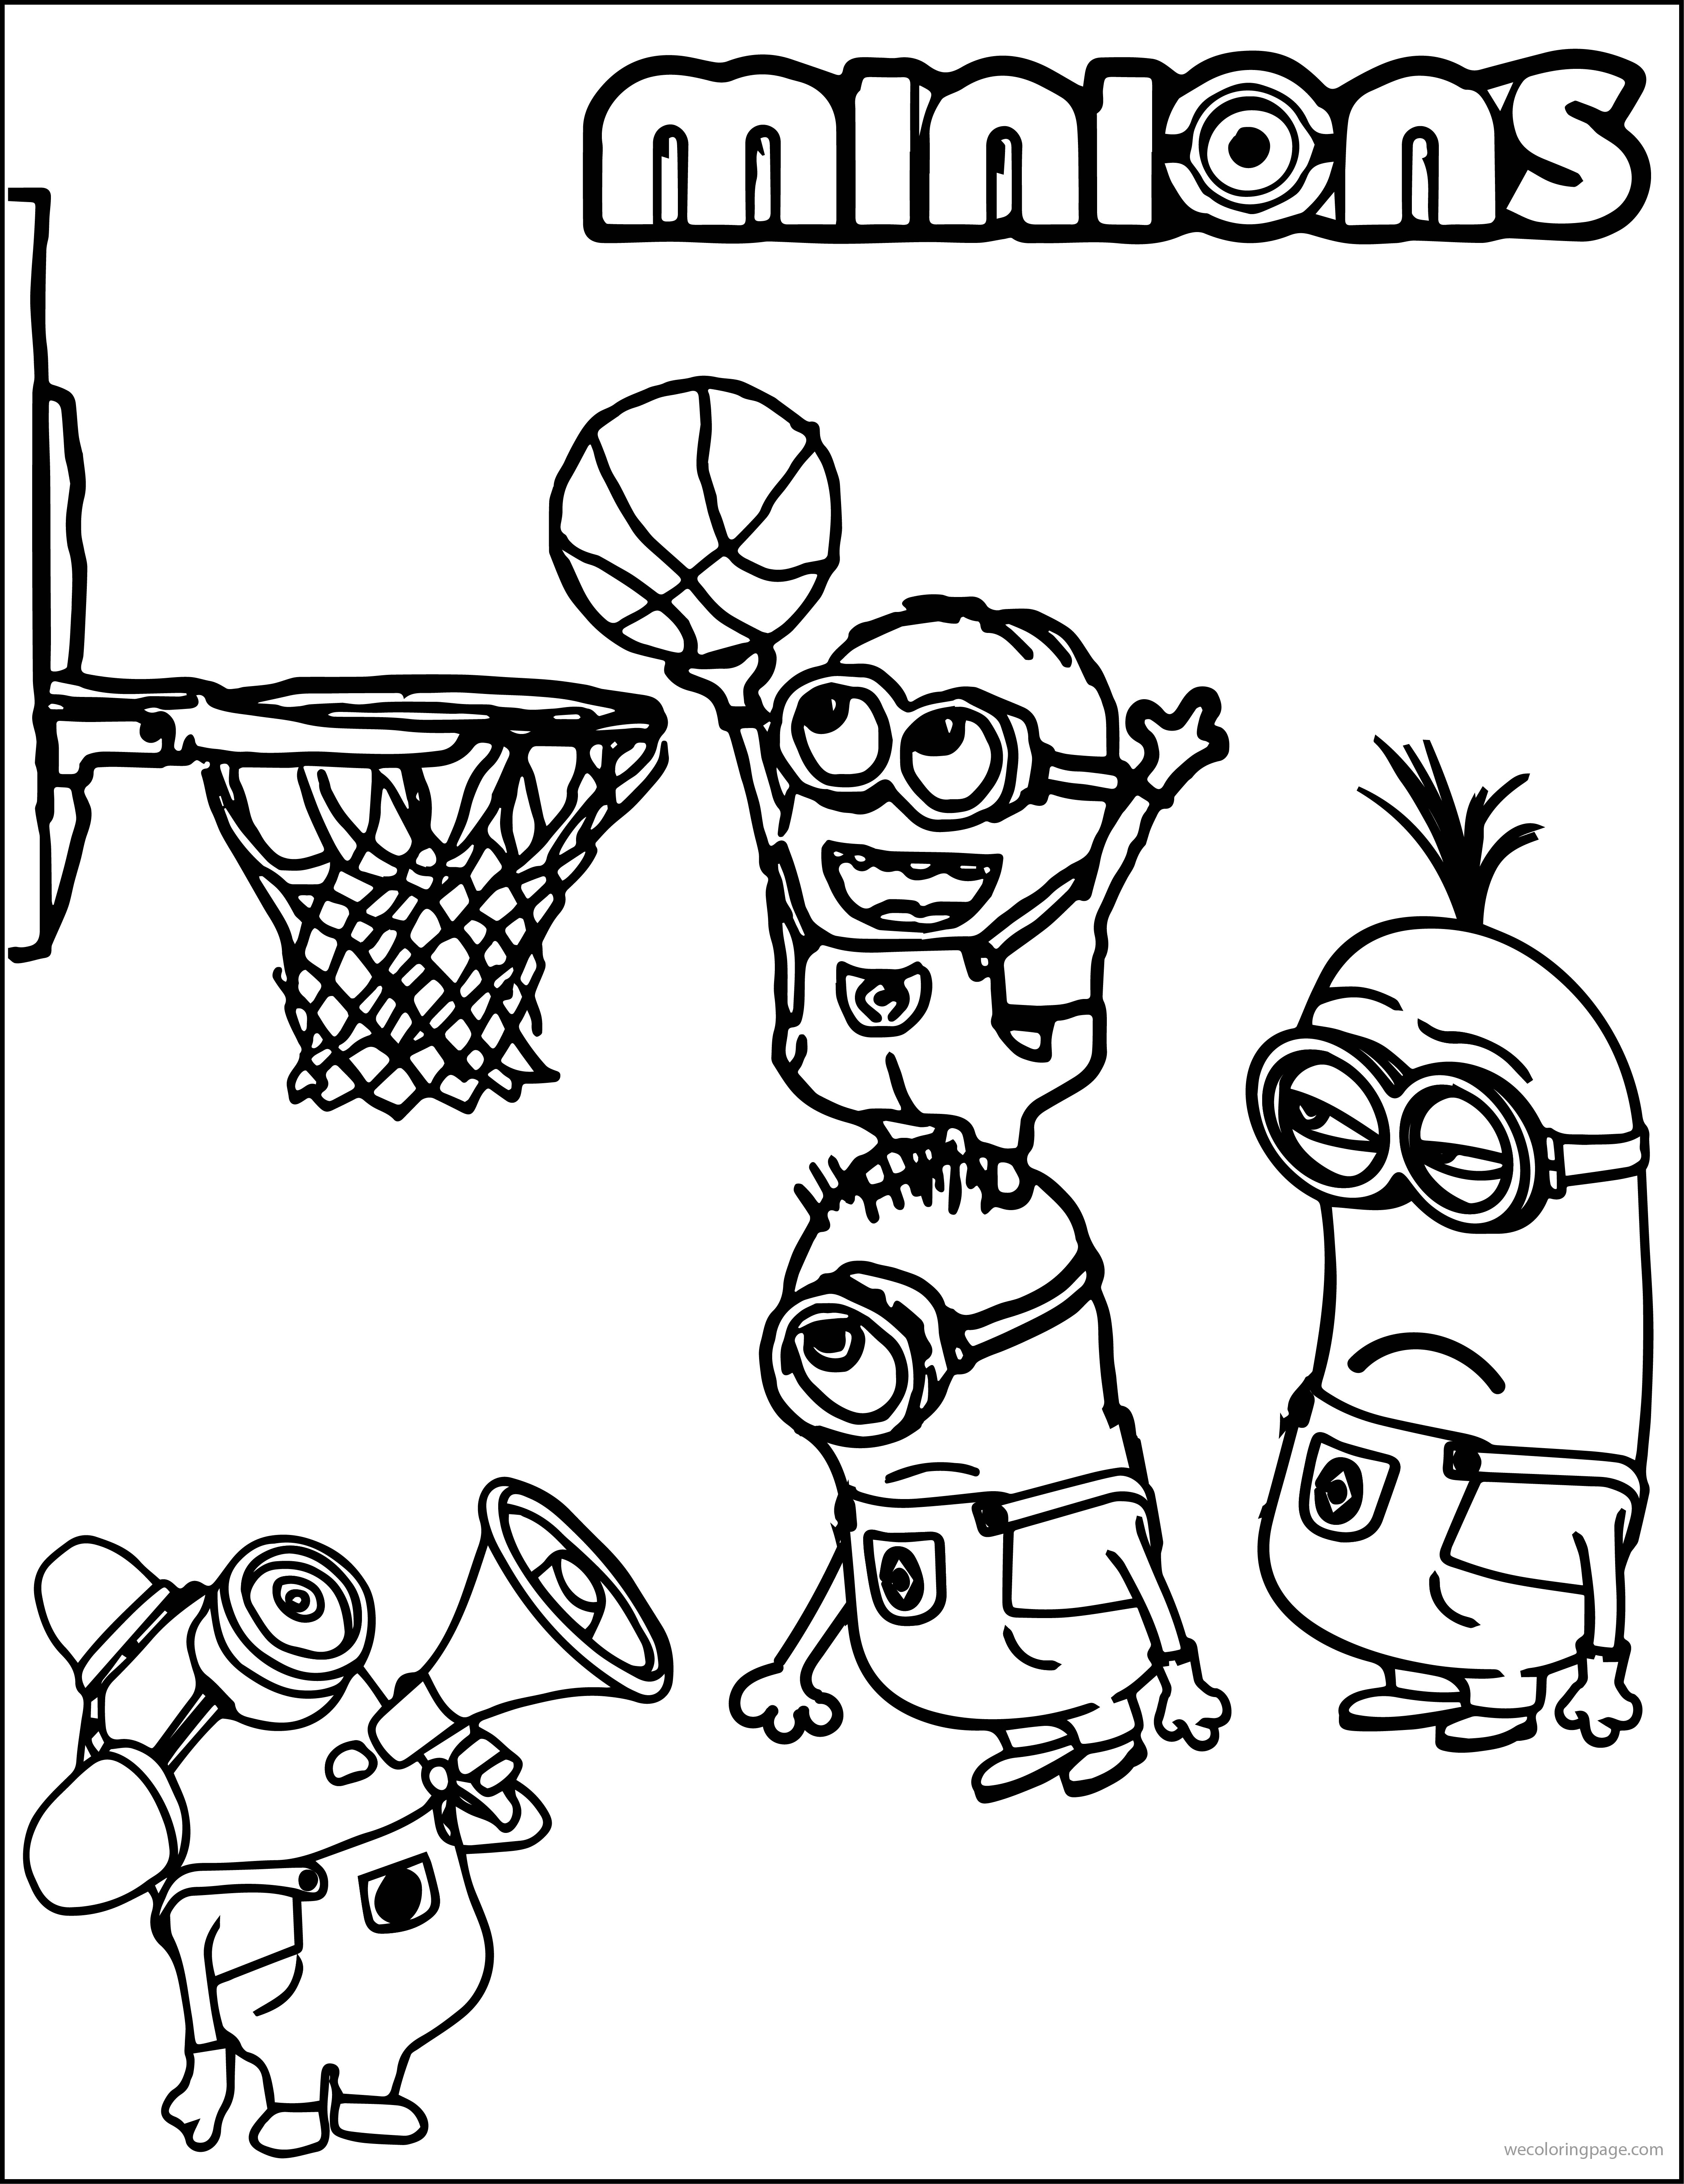 4499x5835 Noted Basketball Coloring Sheets Sports Pages 2 Drawings Printing